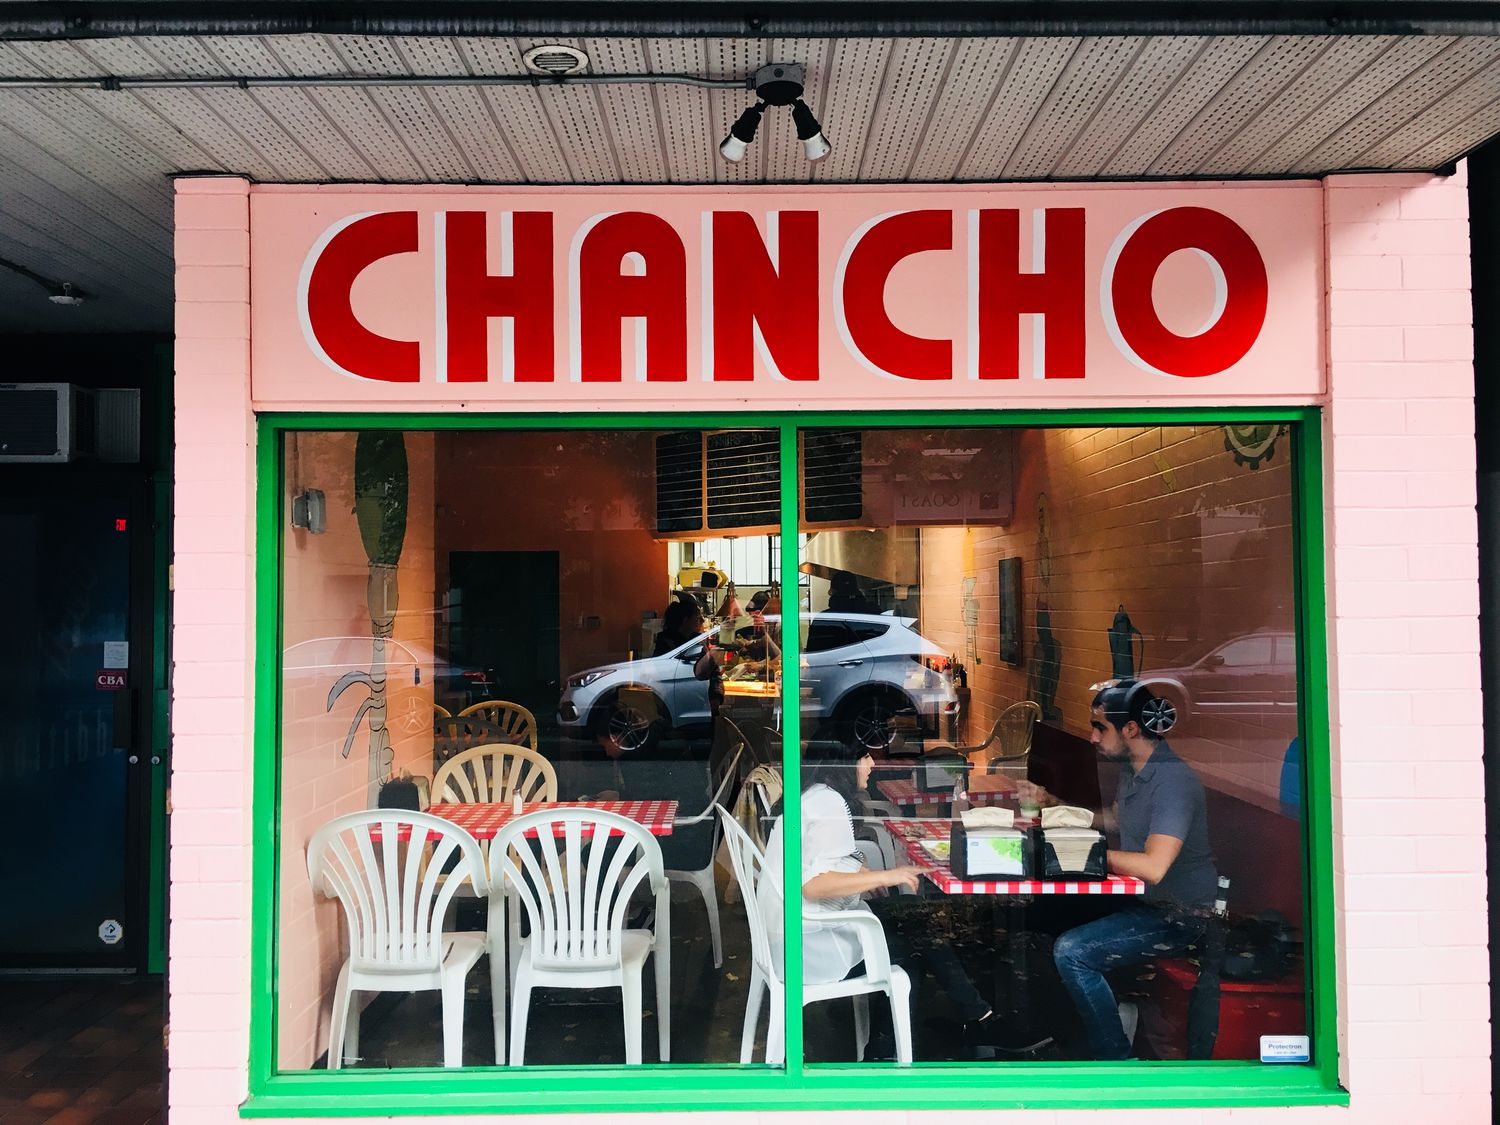 Chancho Mexican restaurant